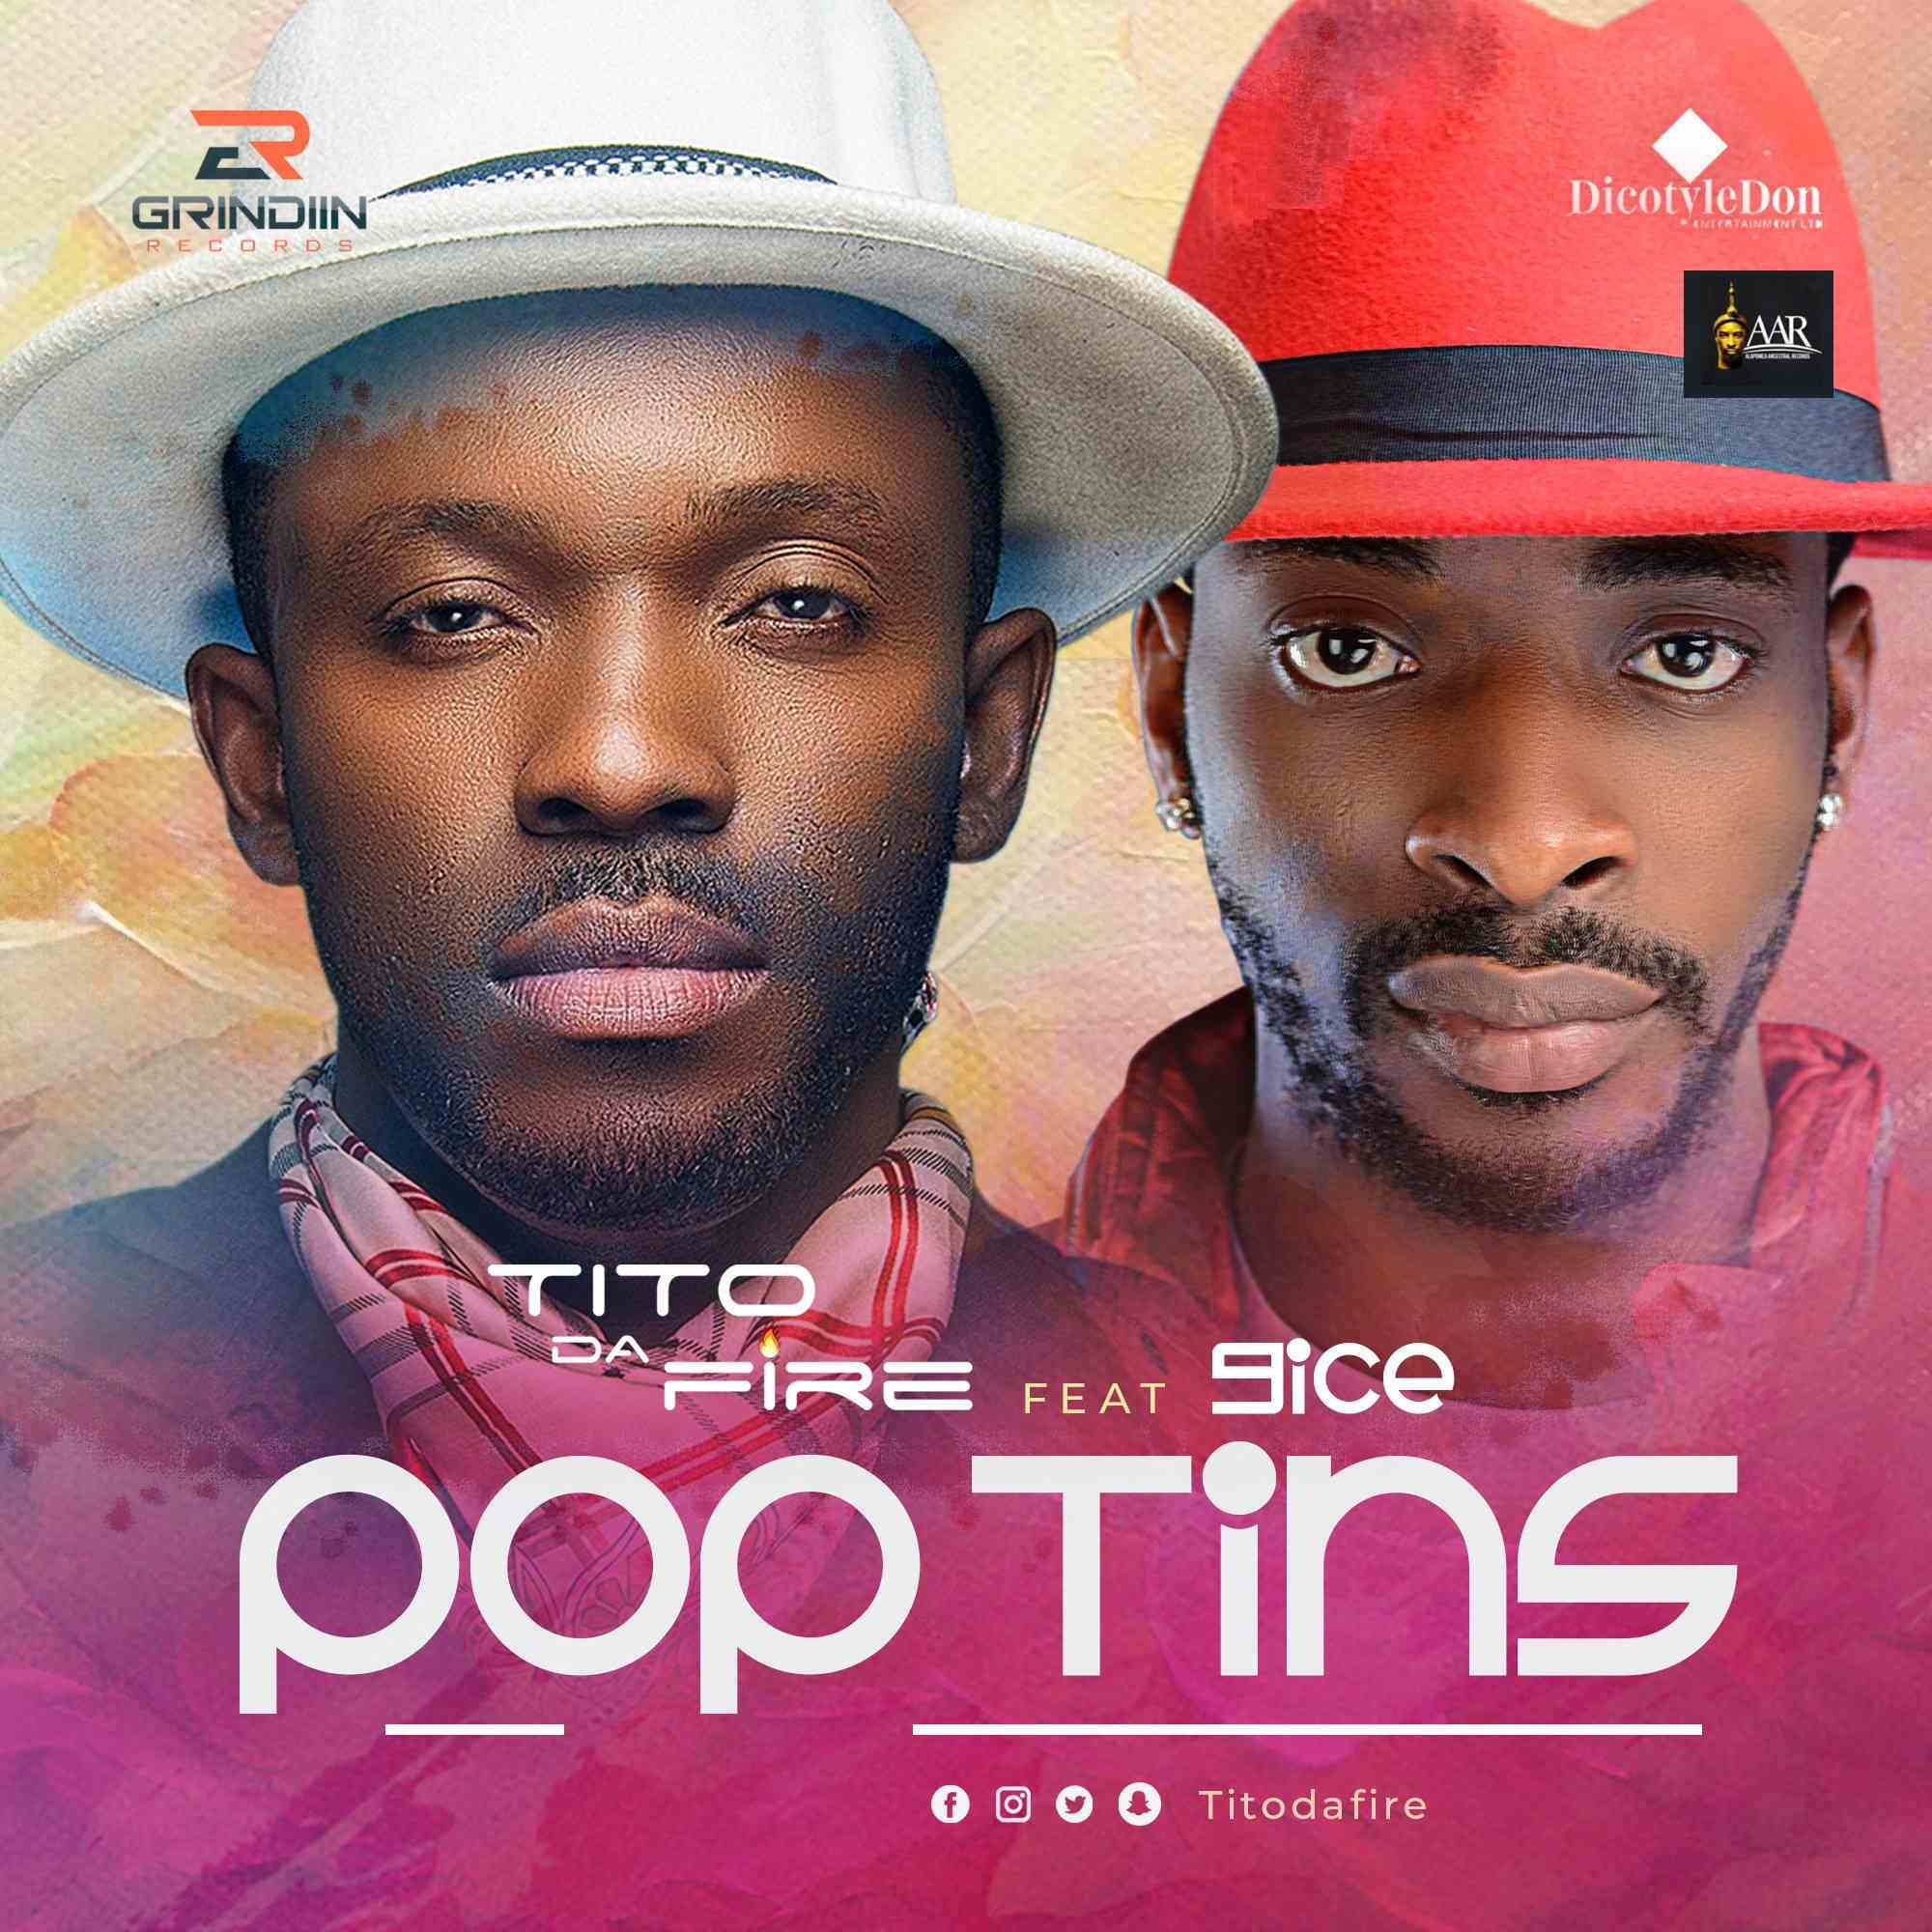 New Music: Tito Da.Fire feat. 9ice - Pop Tins